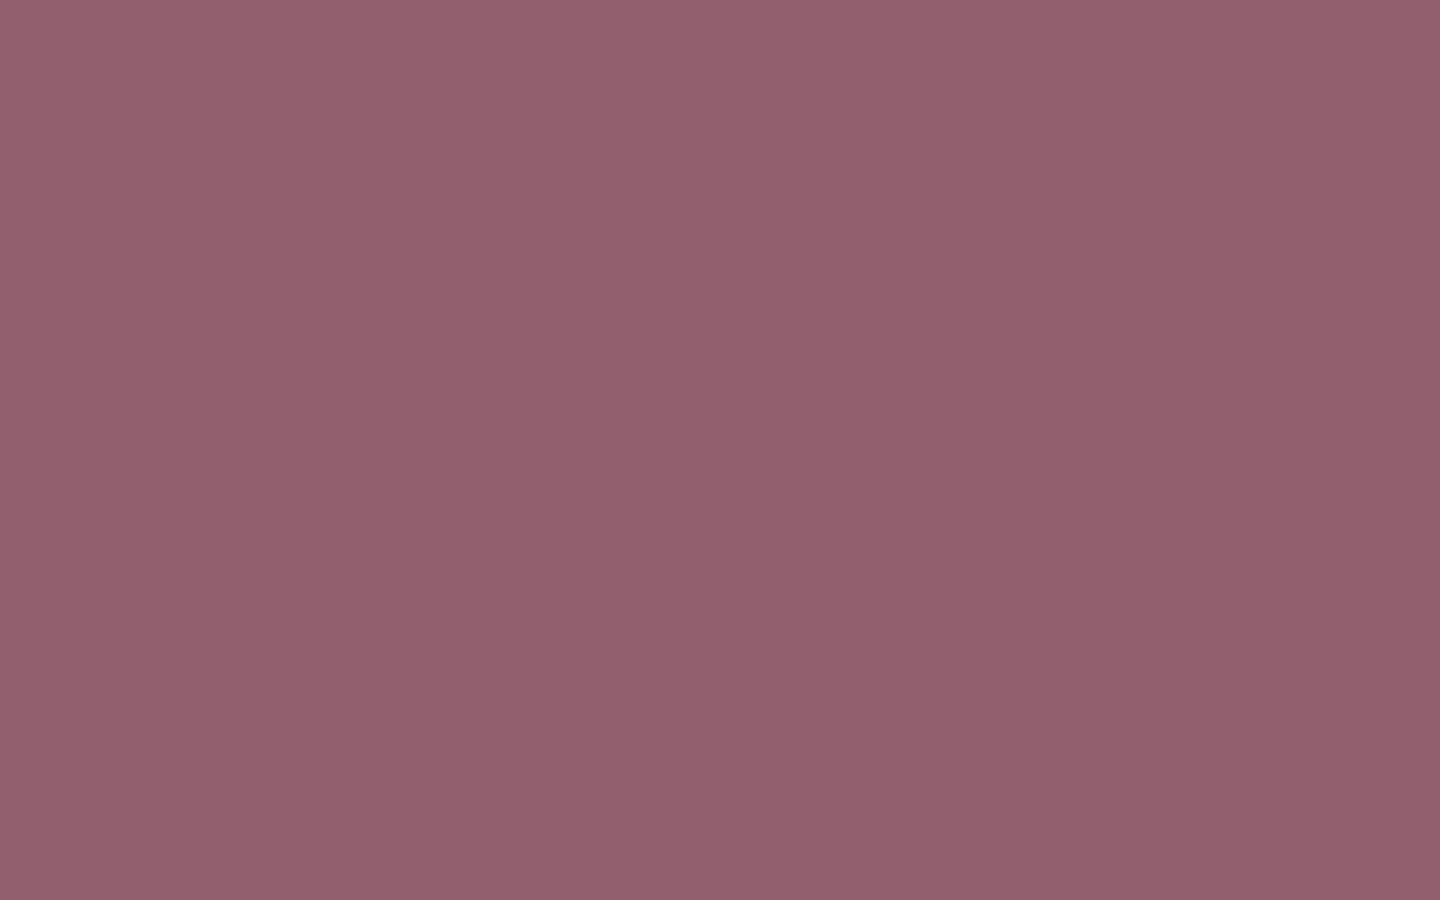 1440x900 Mauve Taupe Solid Color Background